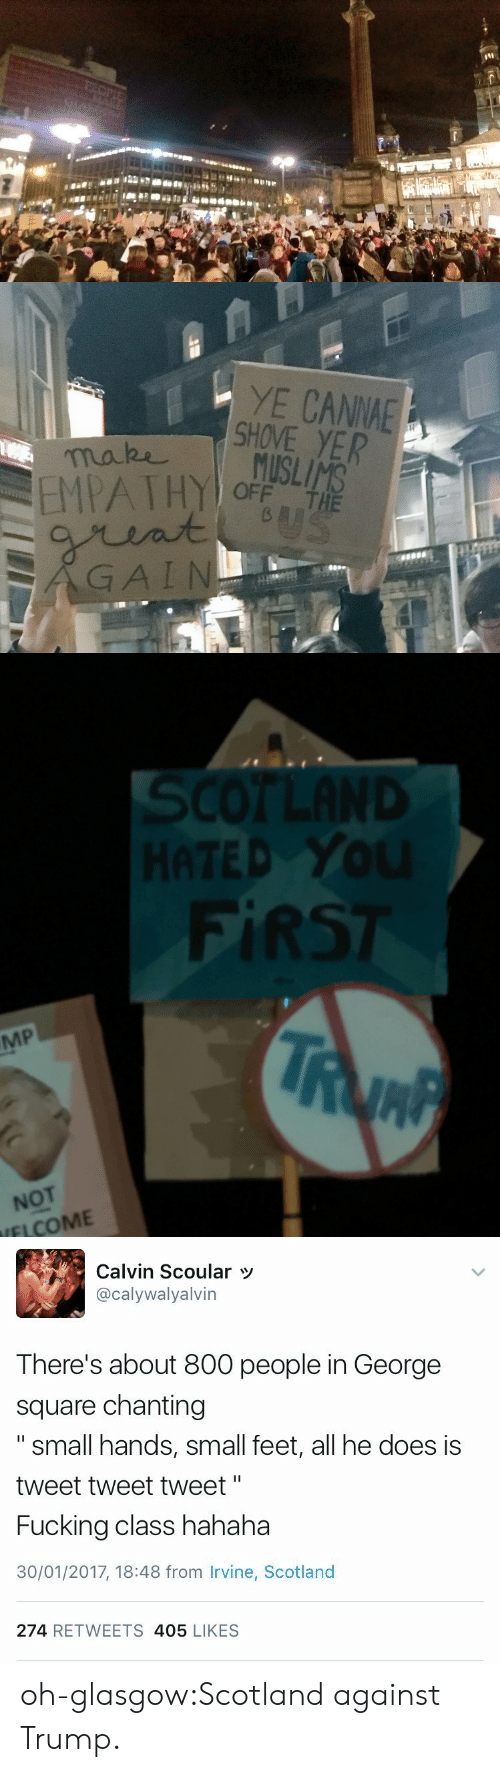 """Small Hands: YE CANNA  SHOVE YER  EMPATHY oF  GAIN  OFF THE   SCOTLAND  HATED YoU  FİRST  MP  NOT  IFLCOME   Calvin Scoular  @calywalyalvin  There's about 800 people in George  square chanting  """" small hands, small feet, all he does iss  tweet tweet tweet""""  Fucking class hahaha  30/01/2017, 18:48 from Irvine, Scotland  274 RETWEETS 405 LIKES oh-glasgow:Scotland against Trump."""